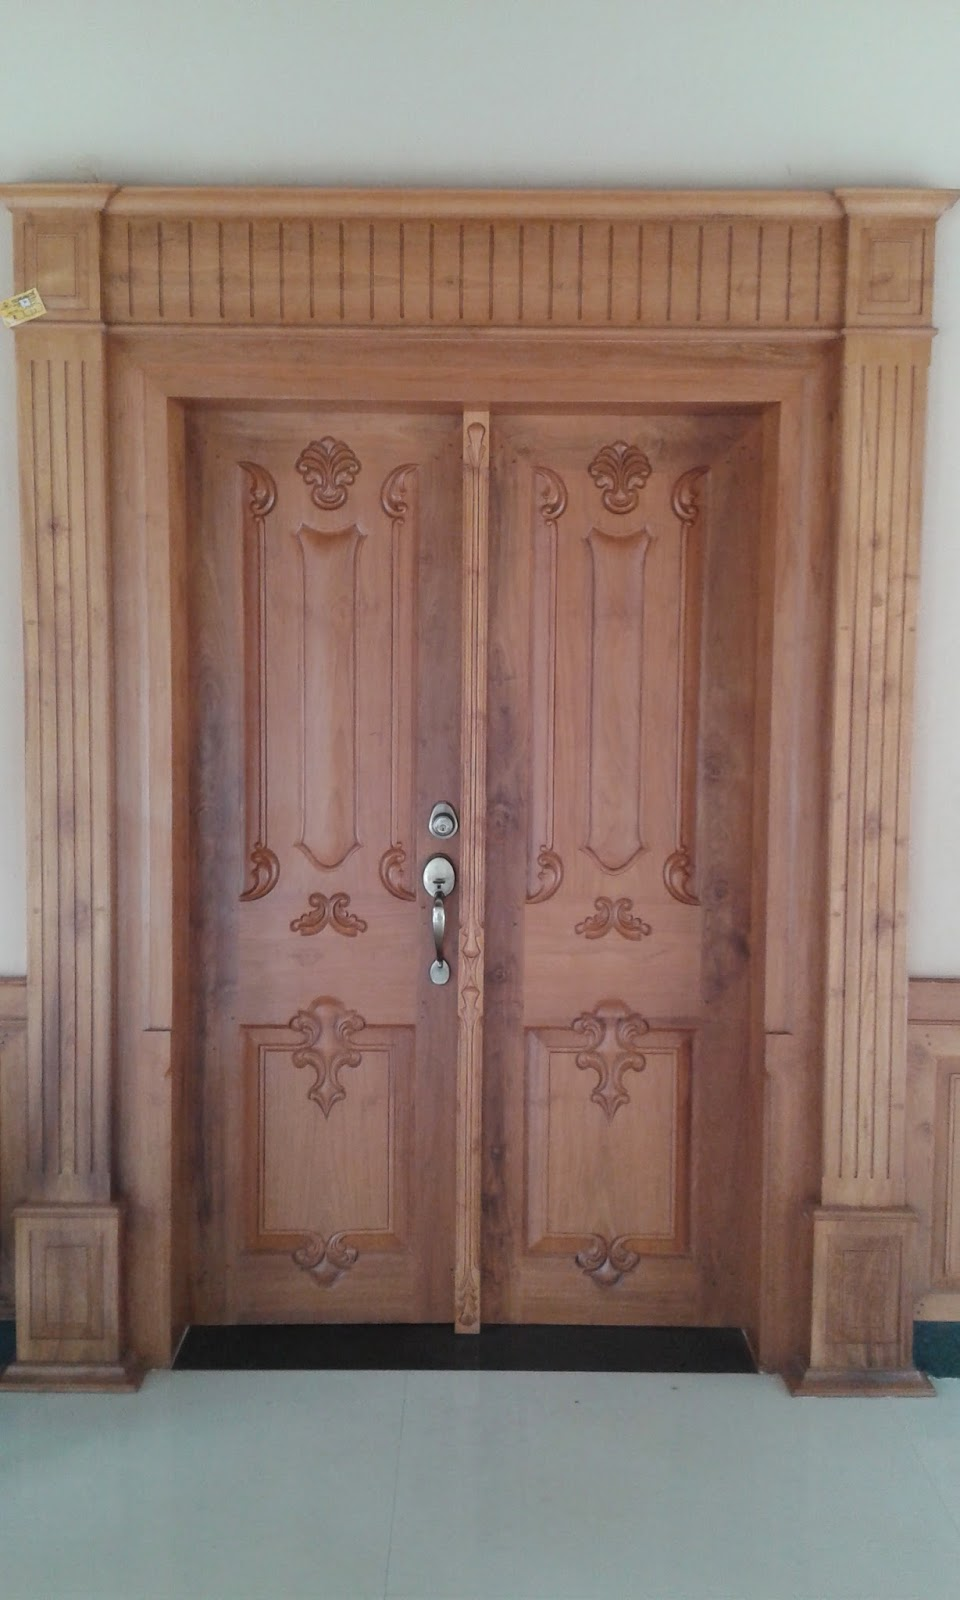 Kerala style carpenter works and designs for Traditional wooden door design ideas